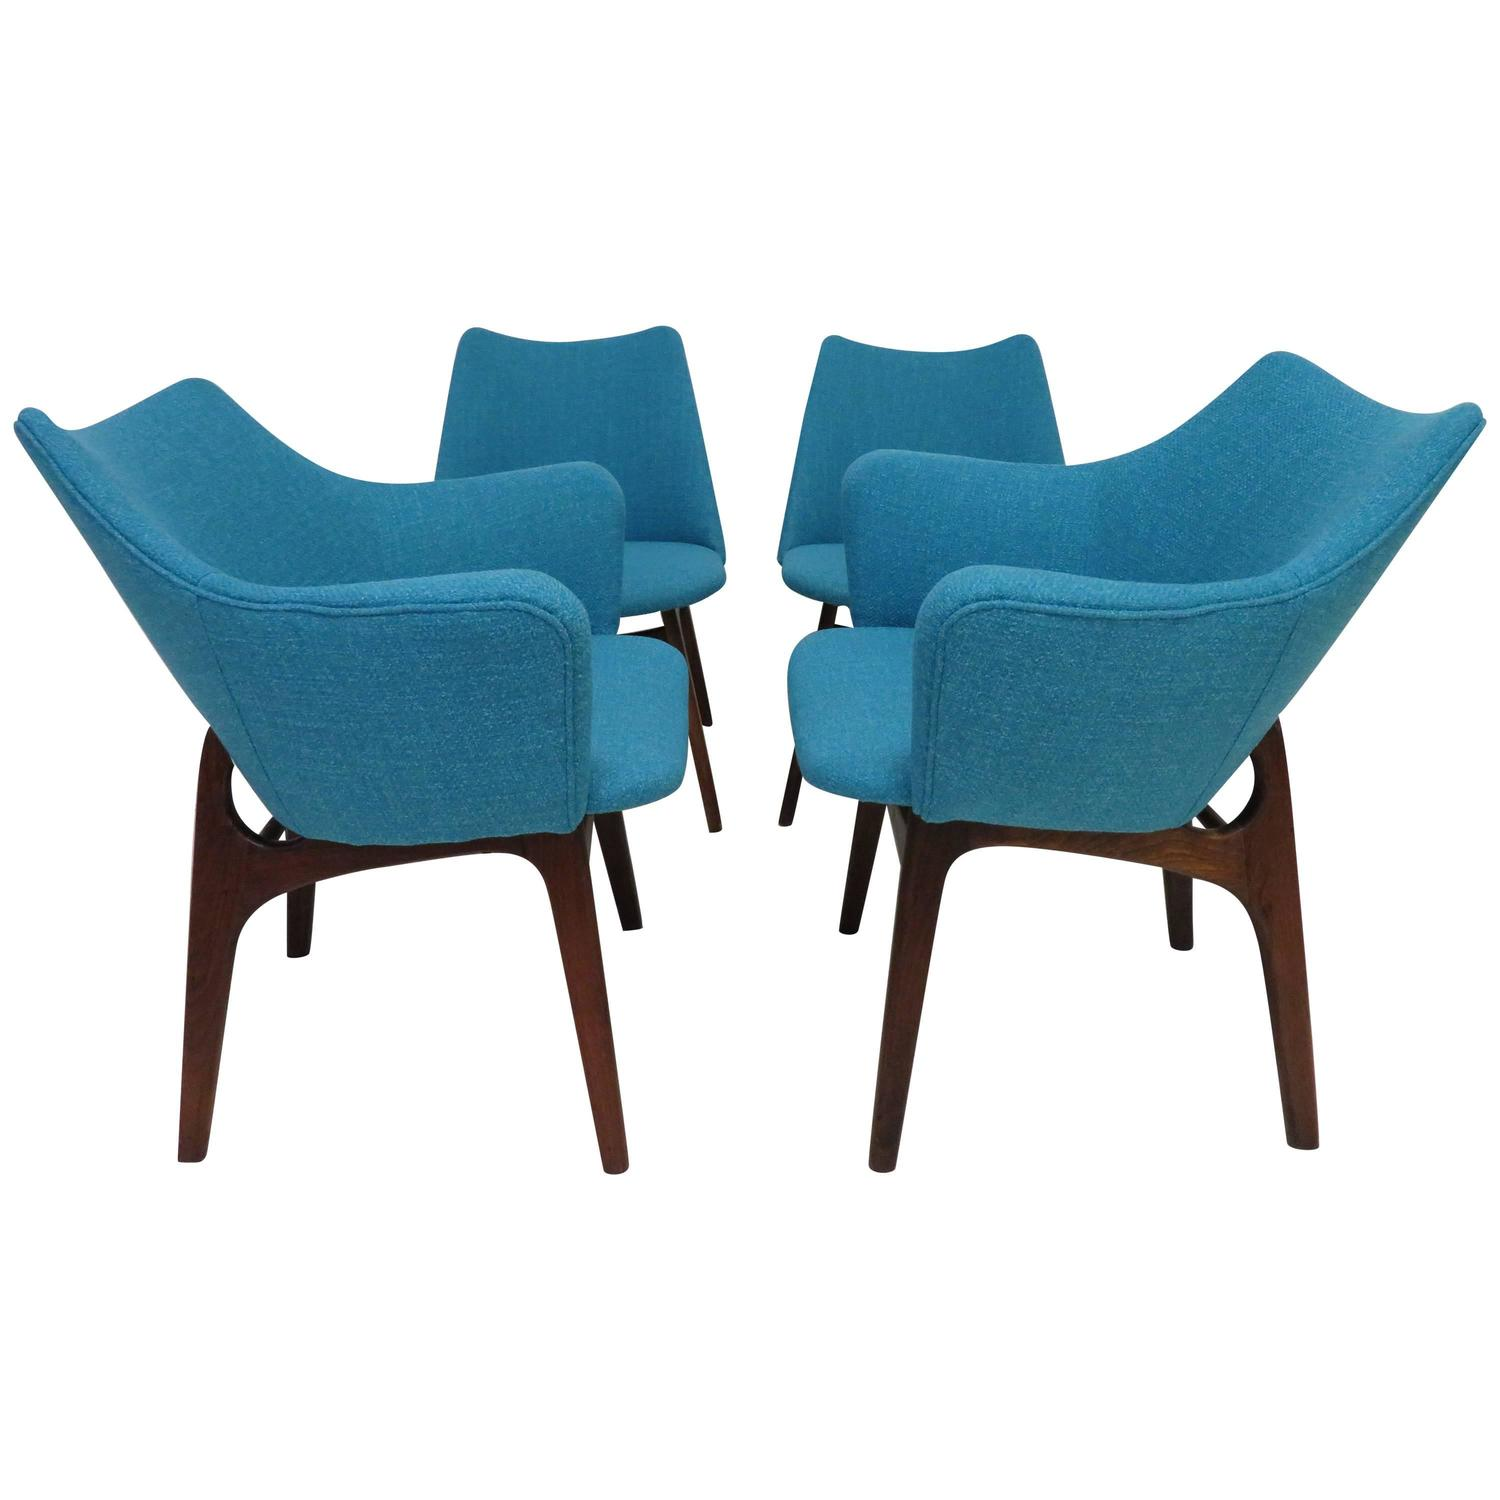 Adrian Pearsall Dining Room Chairs 24 For Sale at 1stdibs